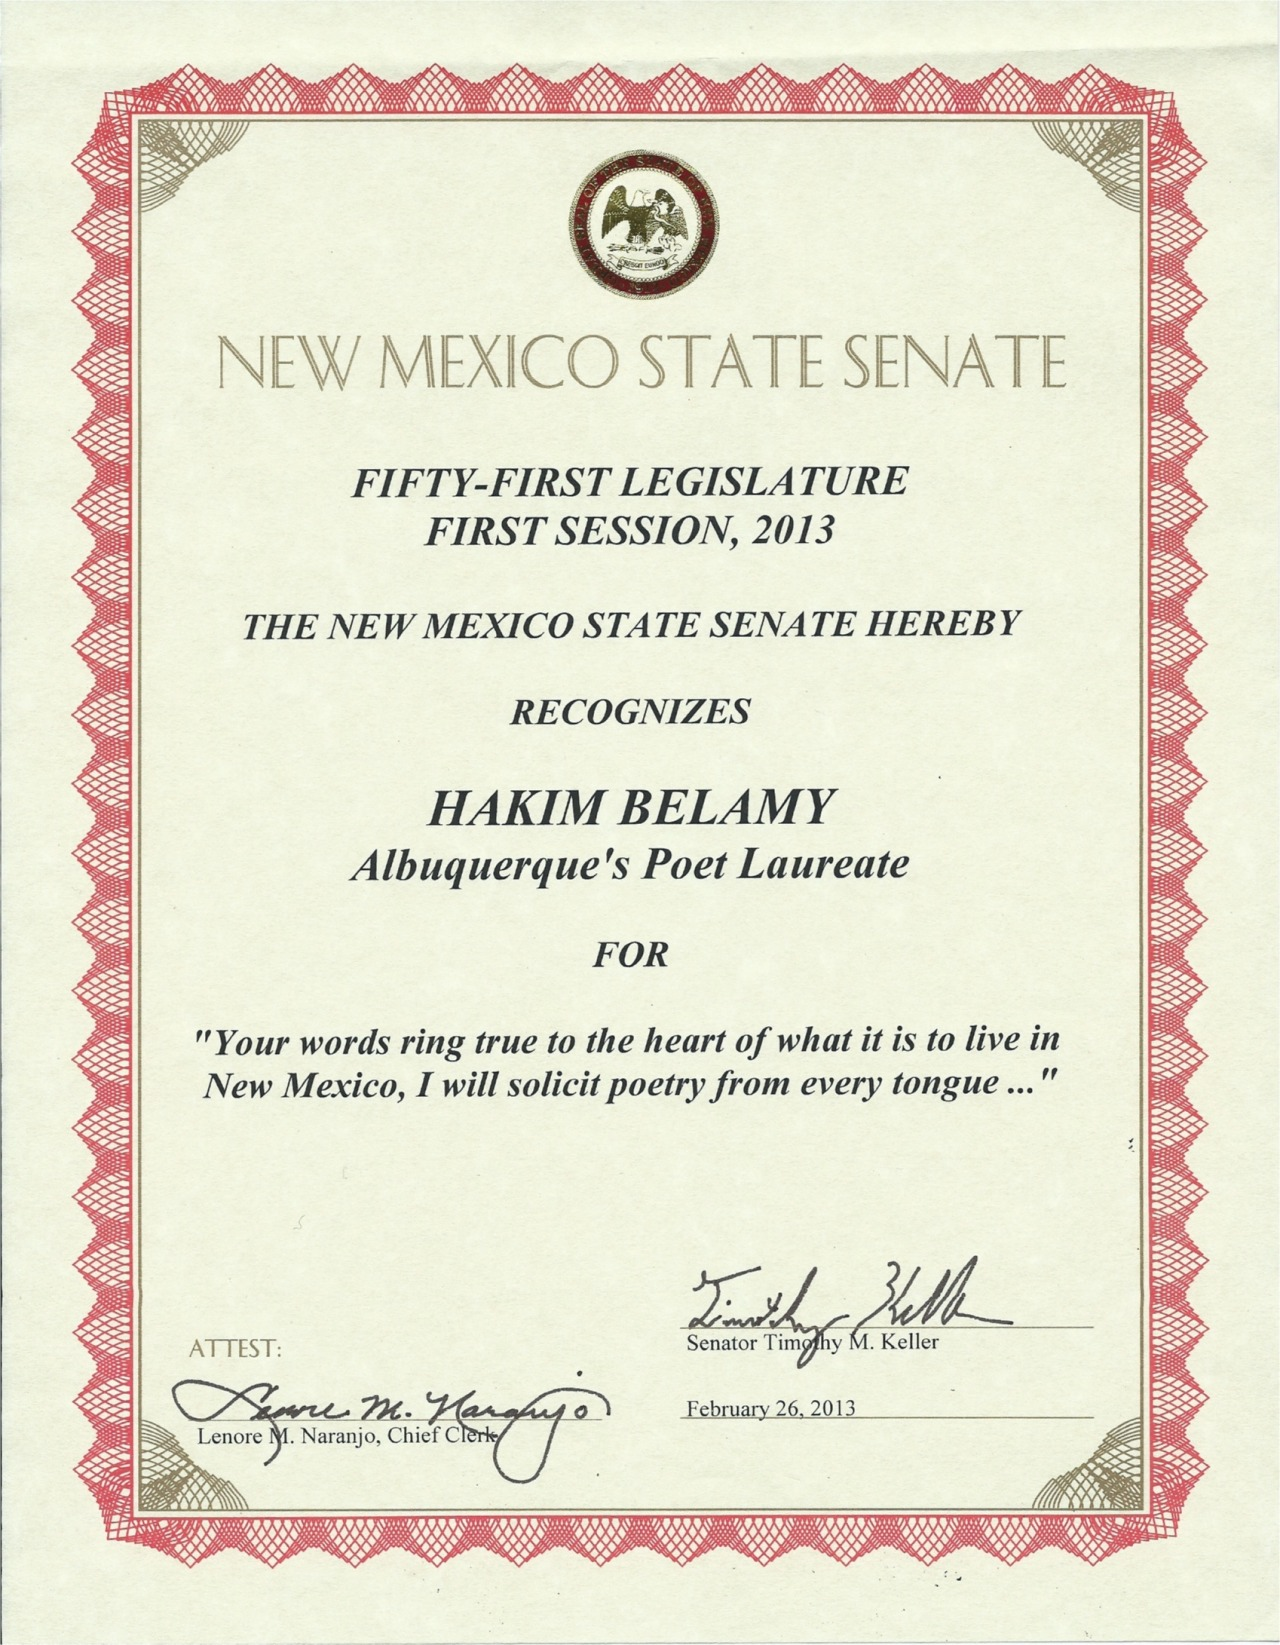 I am proud to be recognized by the New Mexico State Legislature on the floor of the State Senate, thanks to Senator Tim Keller. I am equally proud to be part of the International Day/Asian American Day at the State Legislature festivities…where politics and poetry play nicely. Thank you New Mexico!